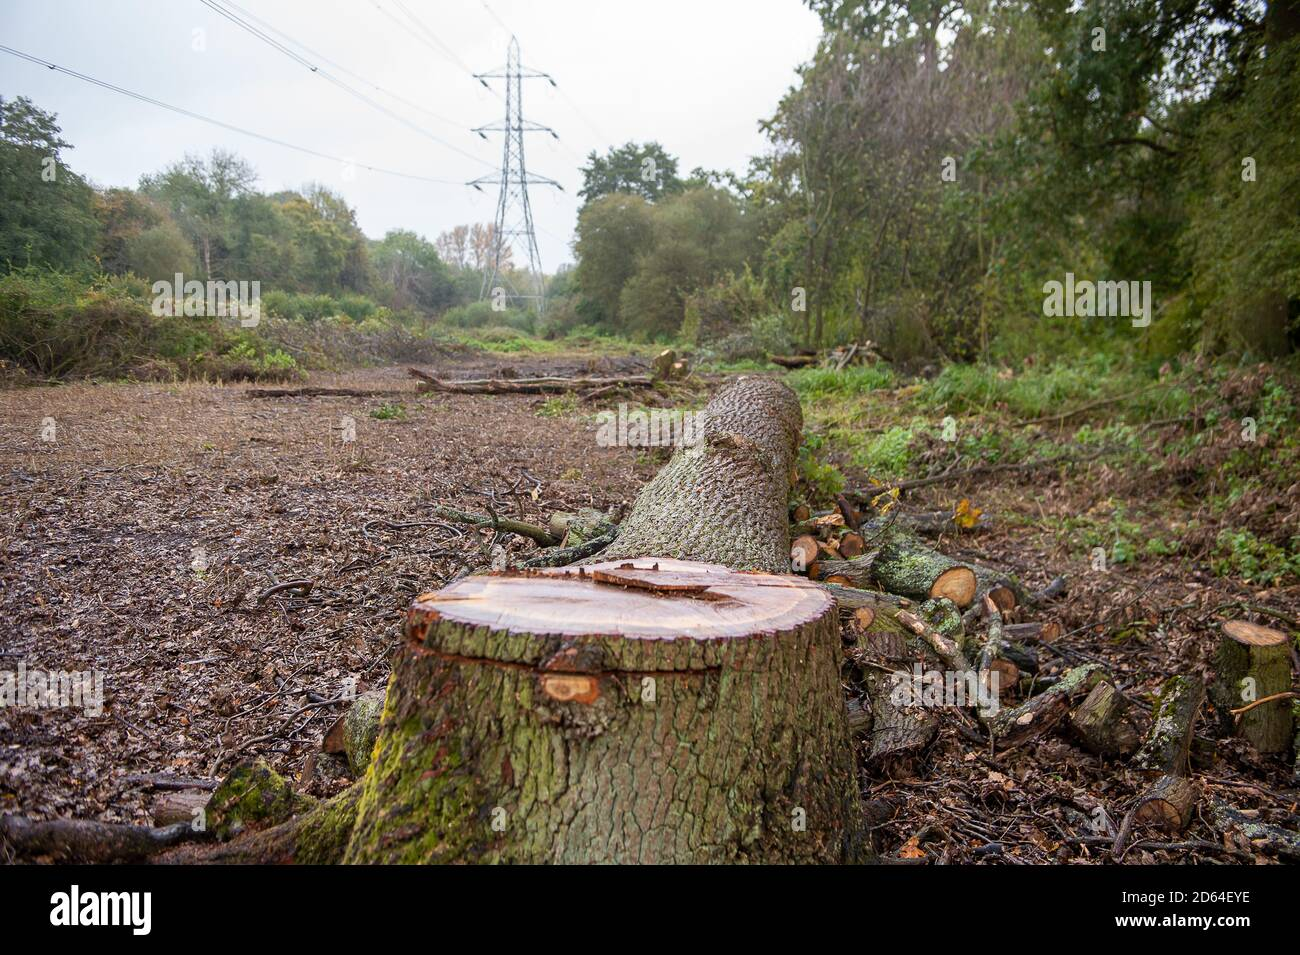 "Denham, UK. 14th October, 2020. HS2 have been felling a large area of trees in Denham Country Park in connection with the construction of the HS2 High Speed rail from London to Birmingham. Today another mature oak tree was destroyed. by HS2. Environmental campaigners from HS2 Rebellion allege that the tree felling in the ""tree graveyard"" near to two electricity pylons and the Grand Union Canal has been taking place in area that is not on the HS2 acquired land map and that therefore, the felling is allegedly illegal. Credit: Maureen McLean/Alamy Stock Photo"